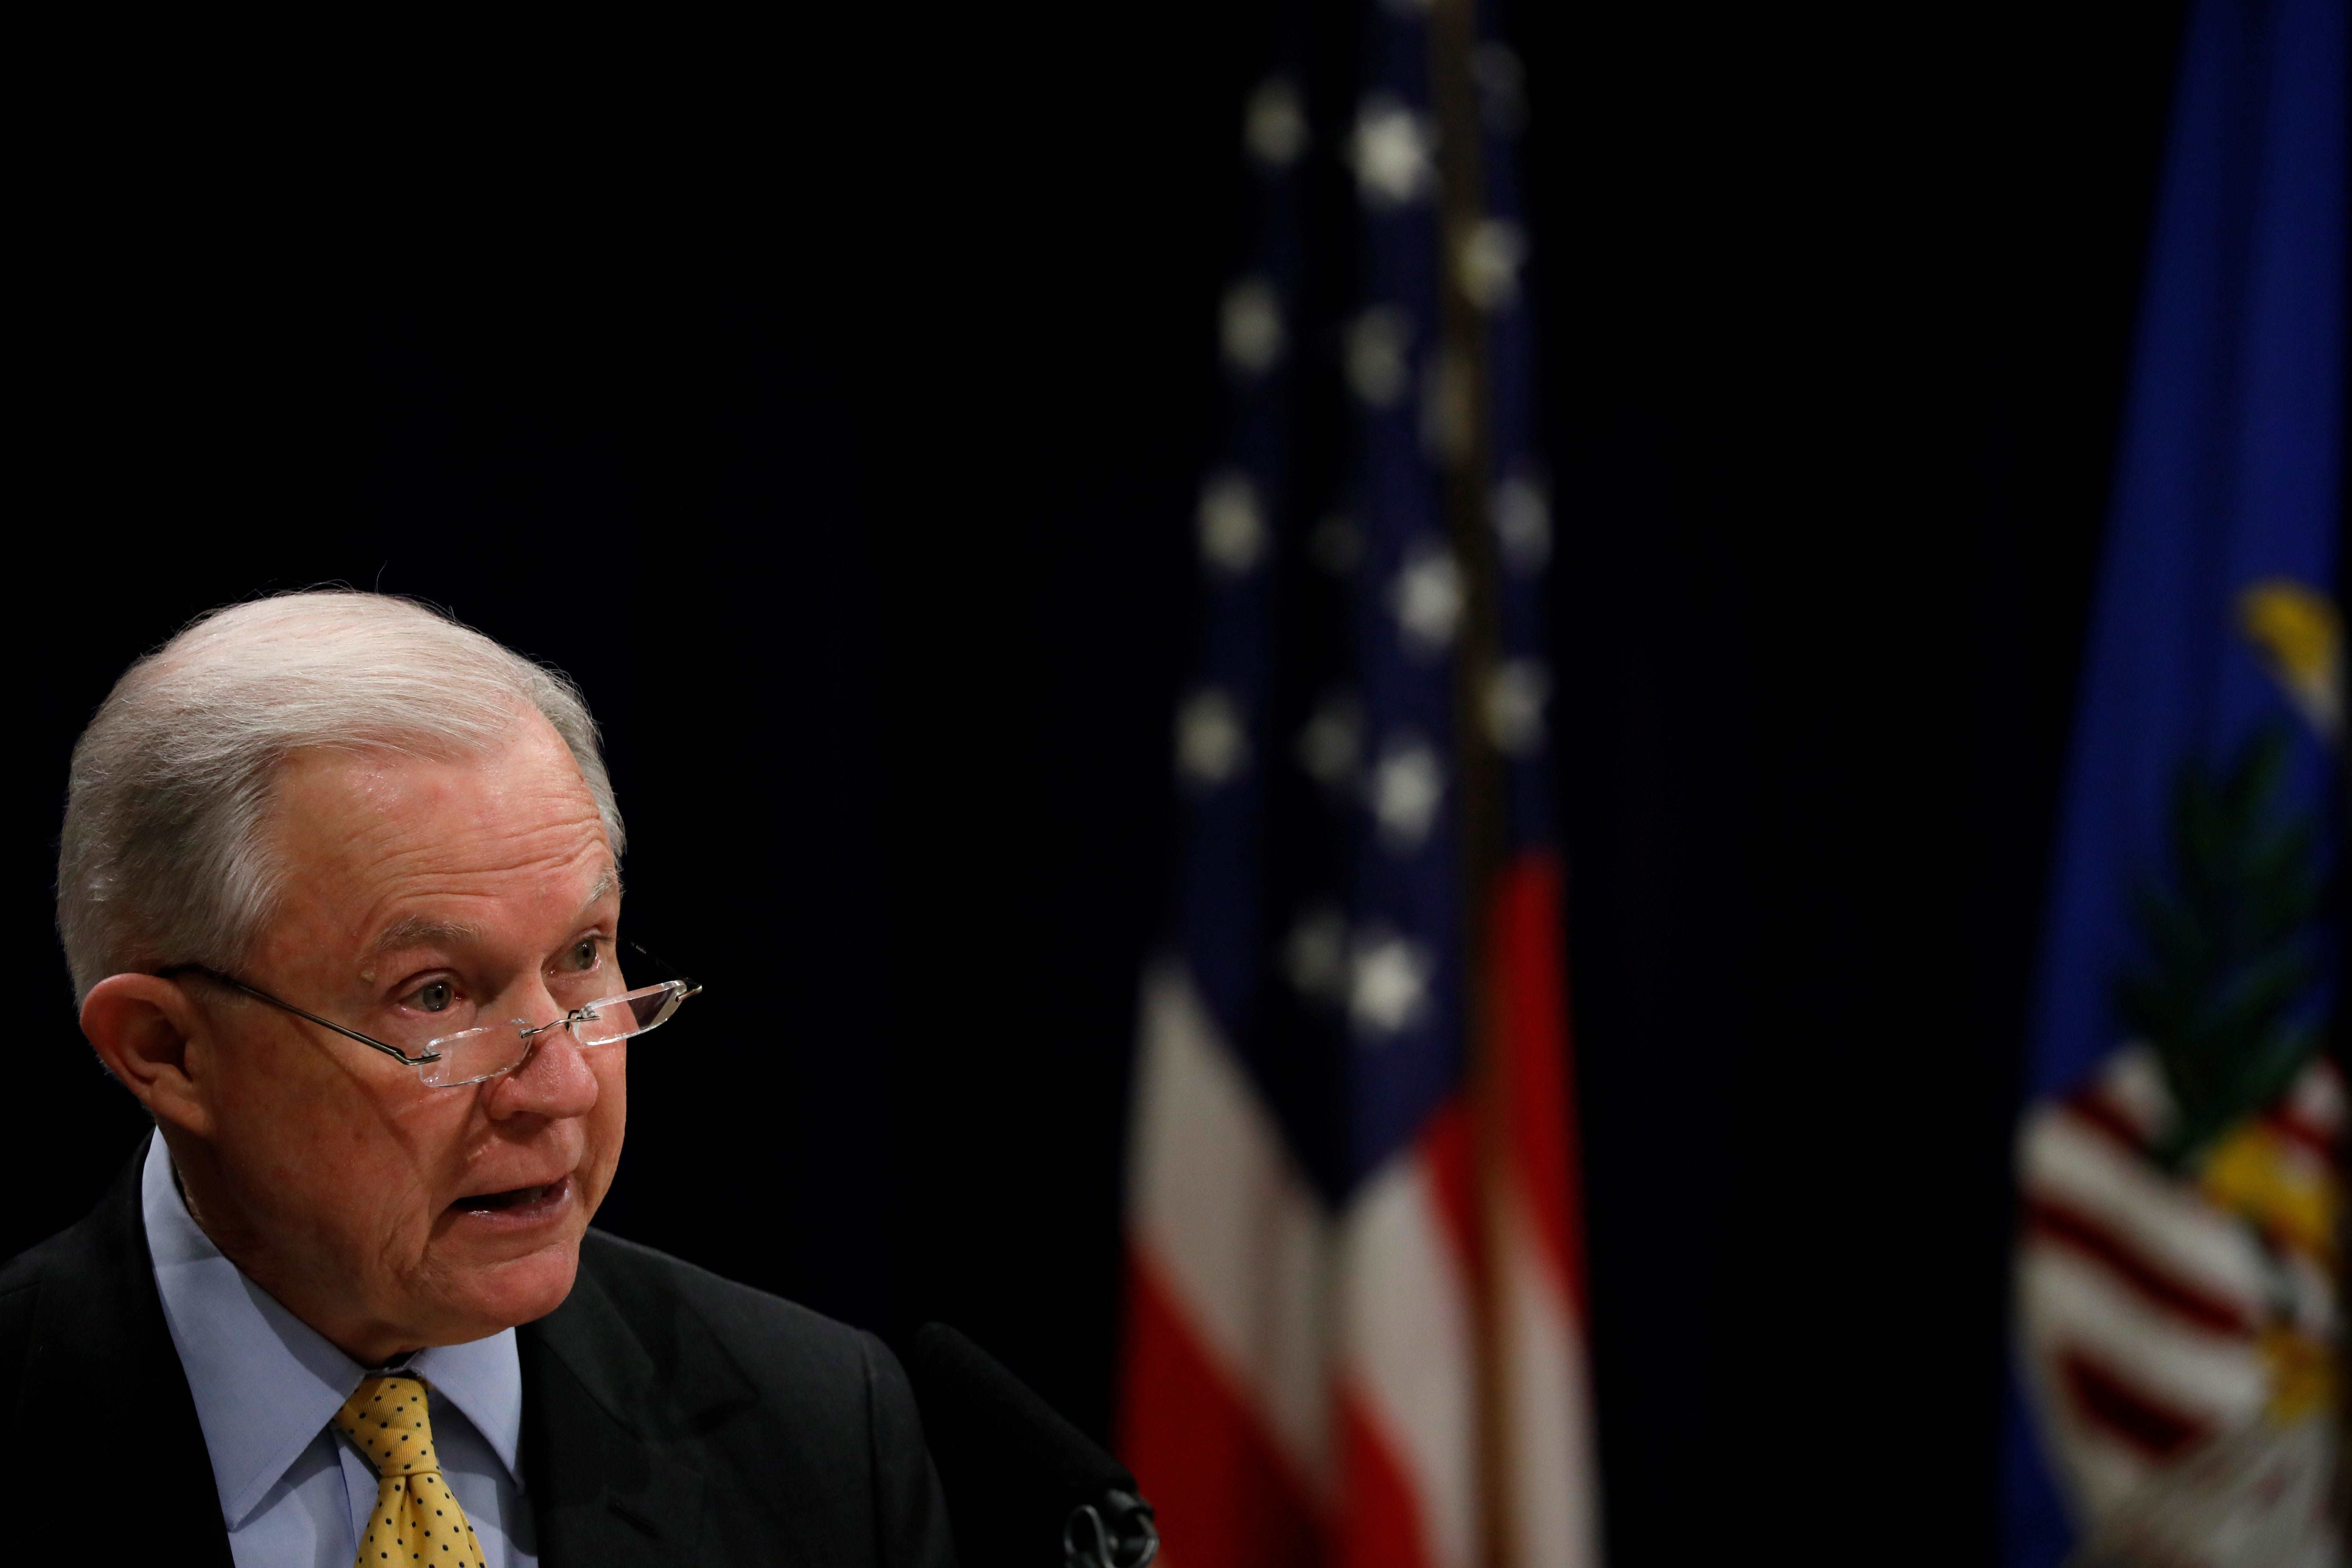 U.S. Attorney General Jeff Sessions speaks at a summit about combating human trafficking at the Justice Department in Washing